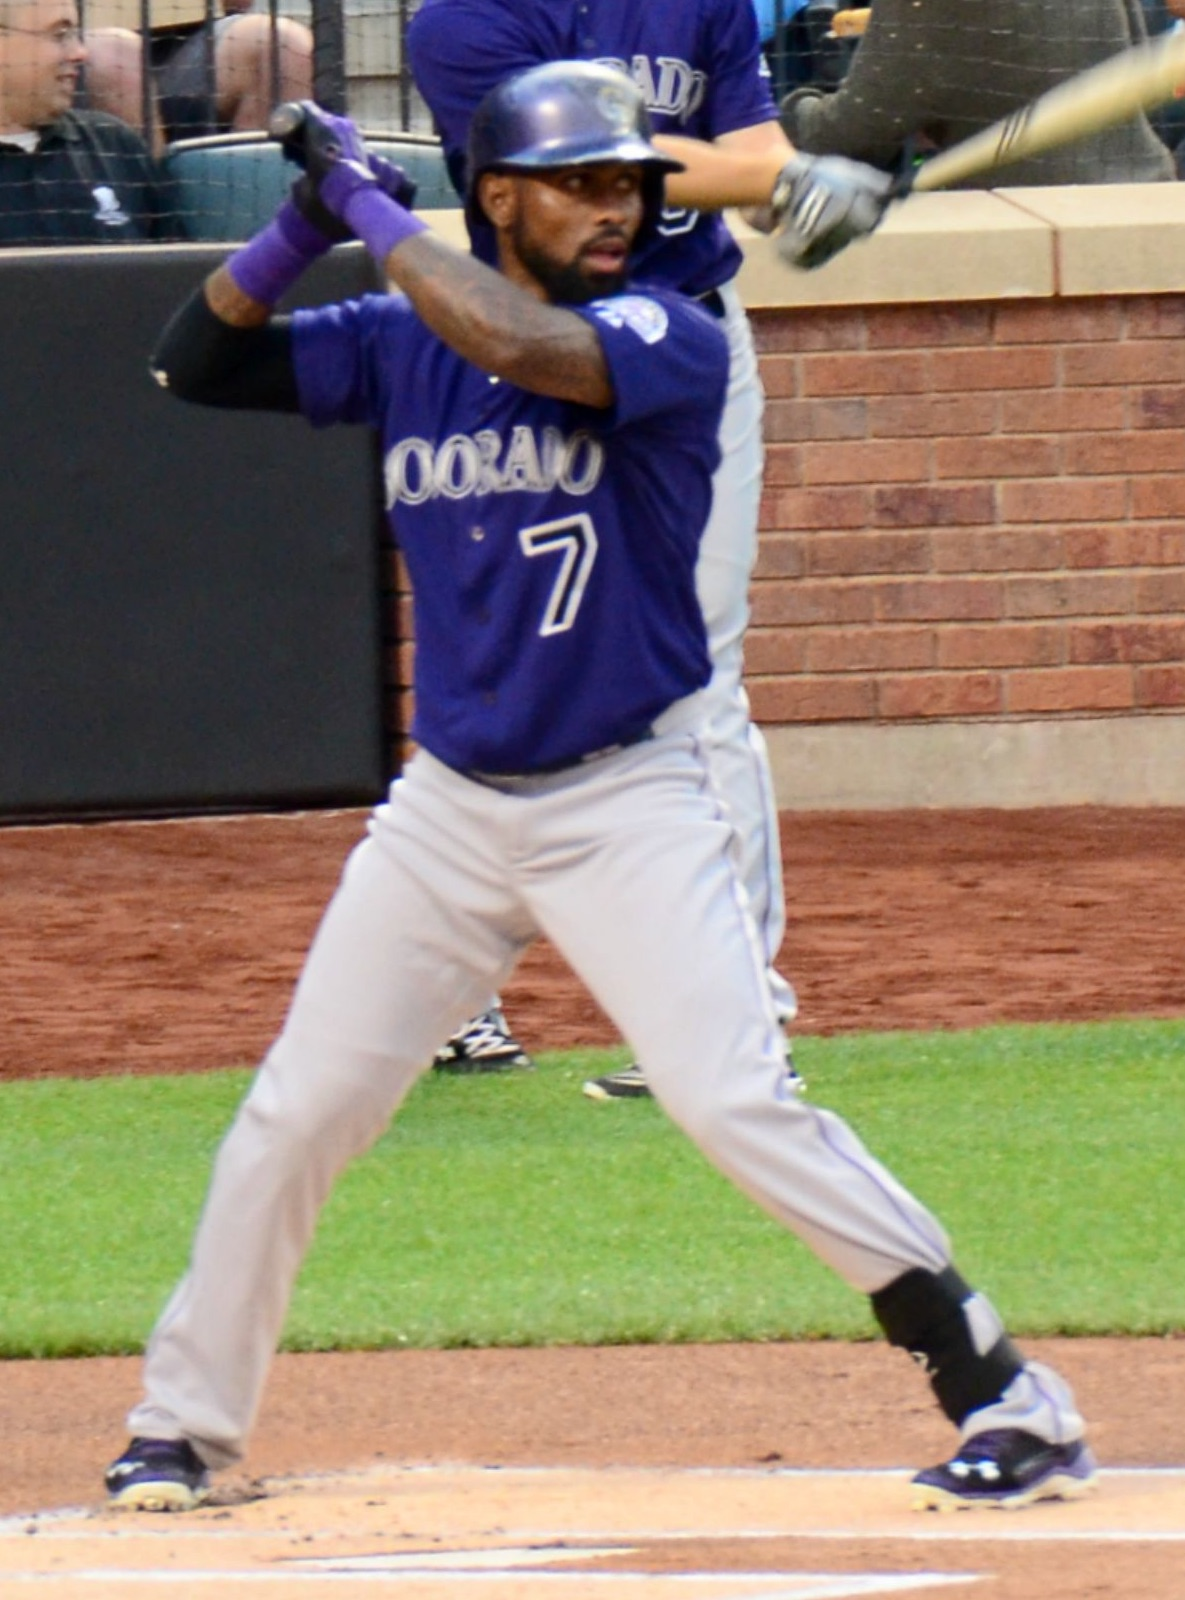 José Reyes Batting for the Colorado Rockies [cropped] ©2015  slgckgc